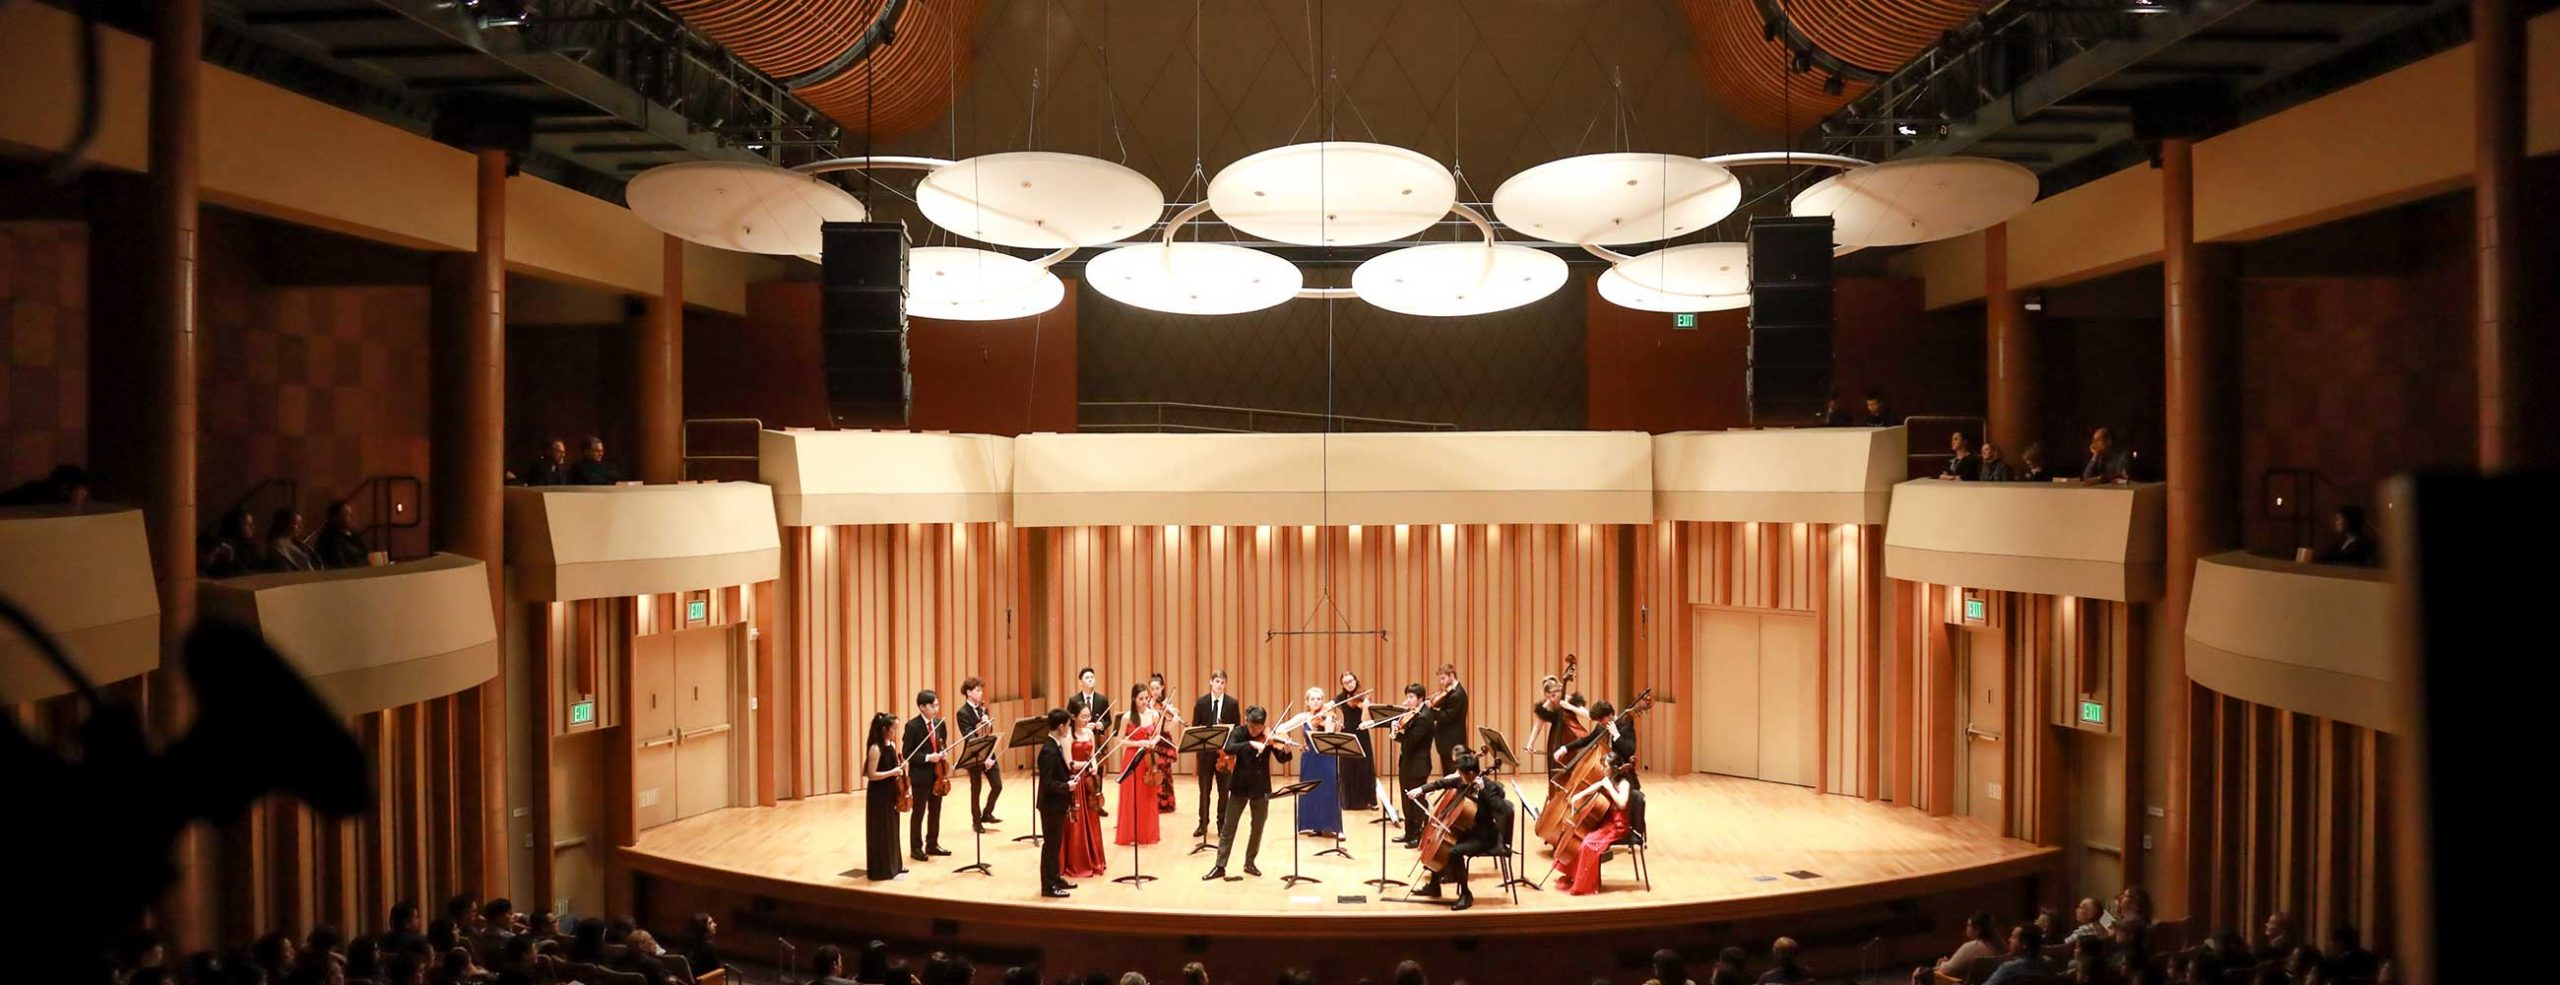 Chamber orchestra in formal dress standing on Zipper Hall stage with full audience